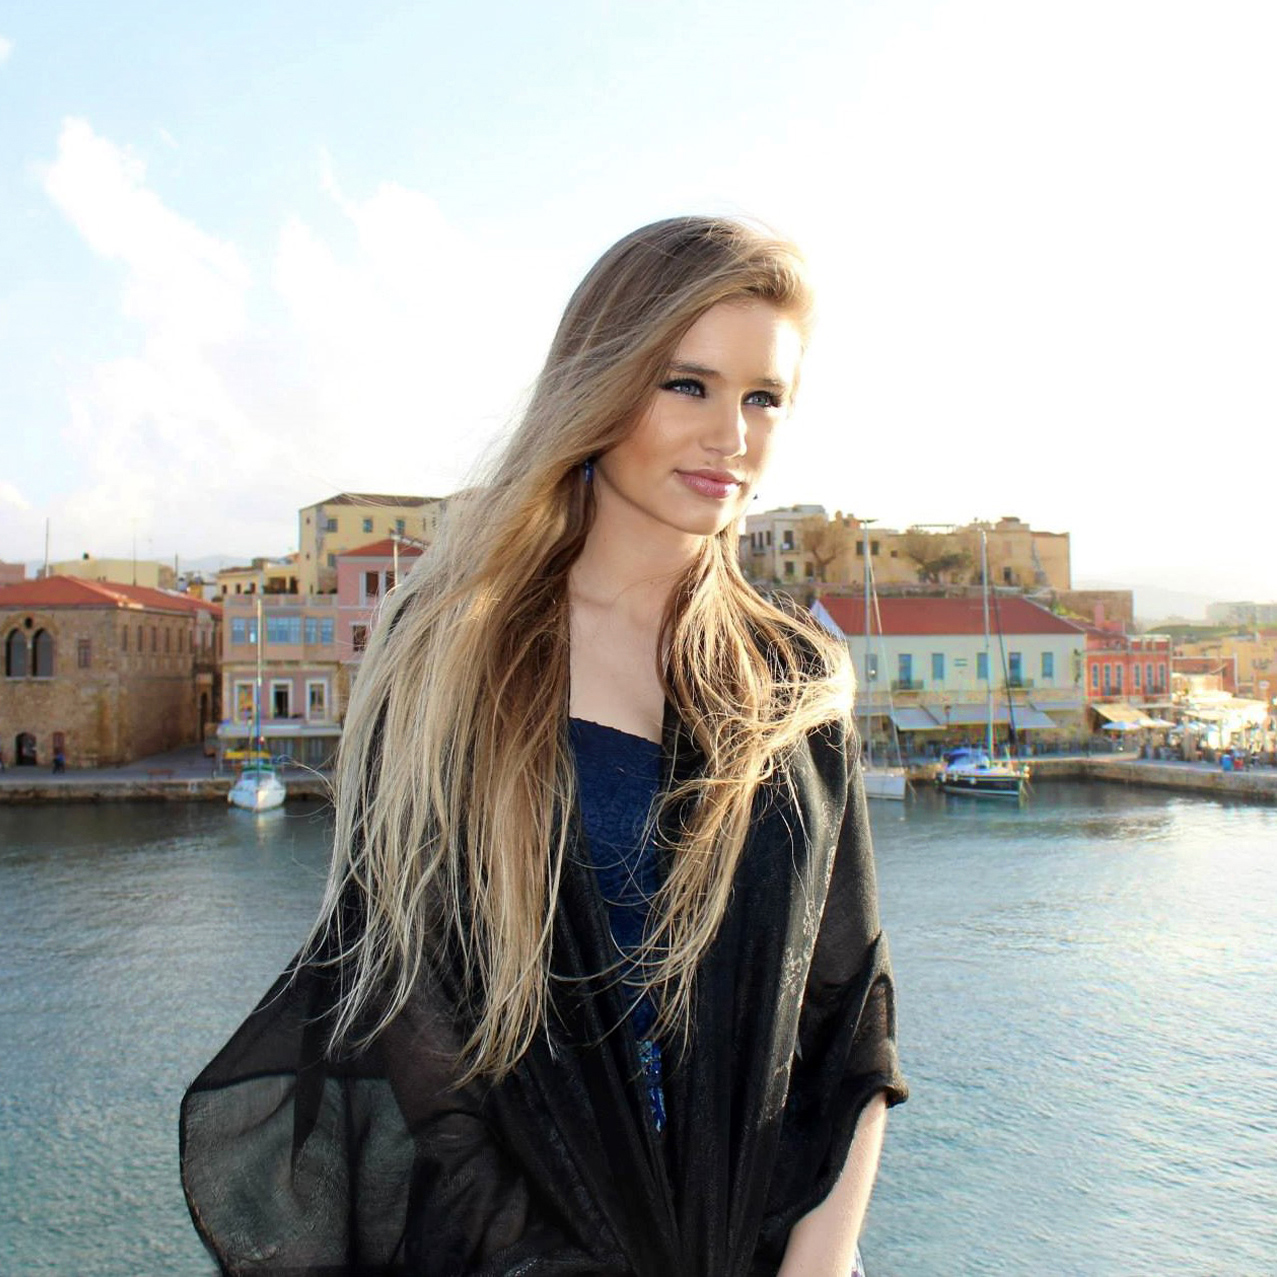 Female travel blogger in Chania, Greece admiring the view of the city.